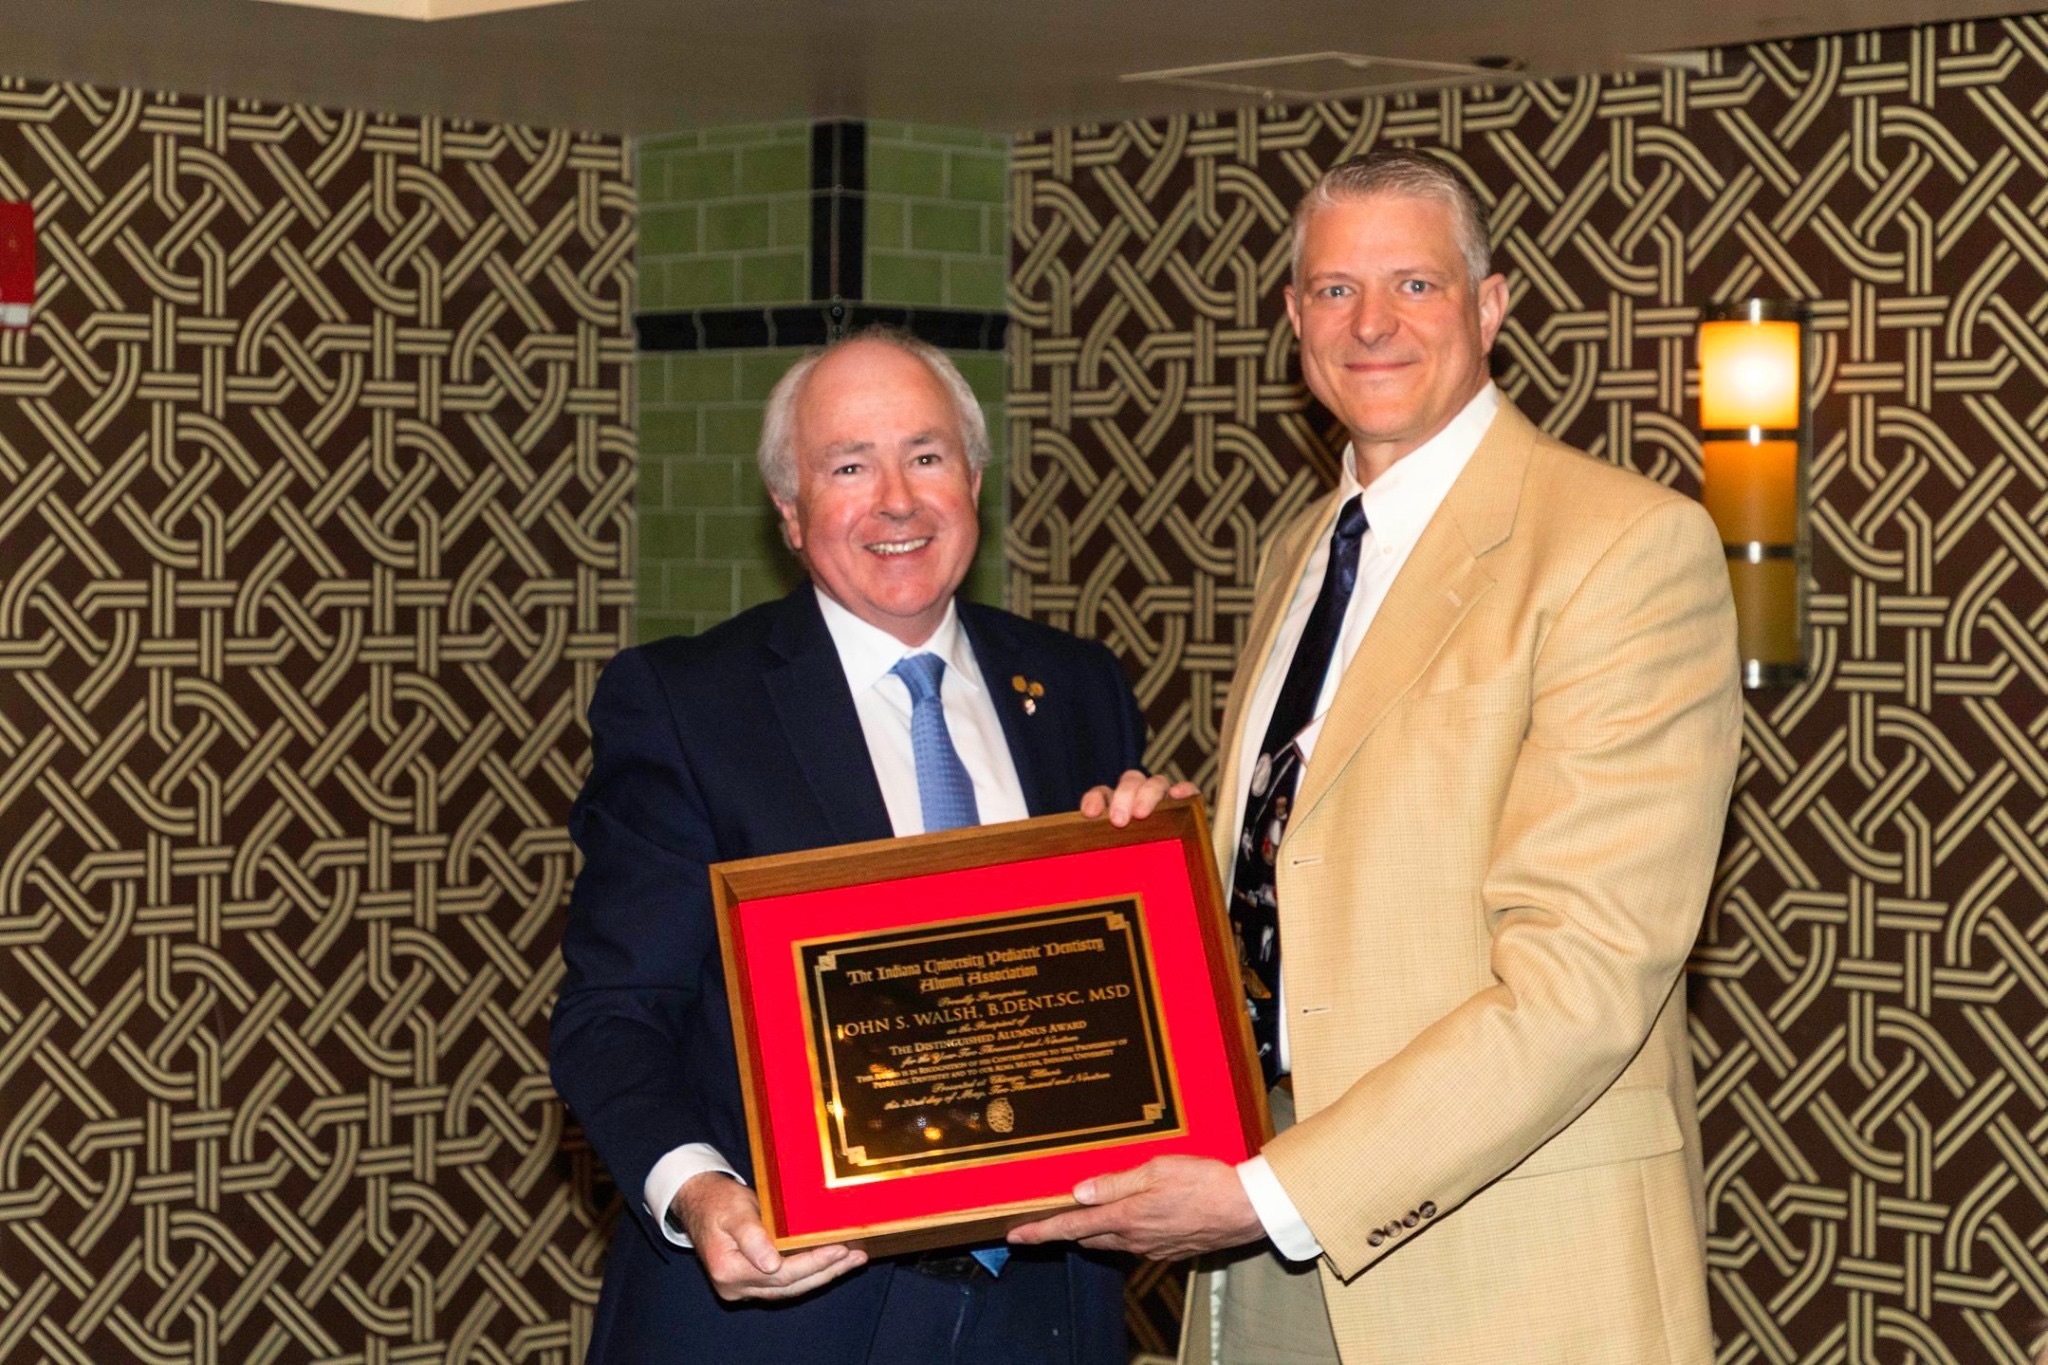 images/News/John_Walsh_Indiana_University_Award.jpg